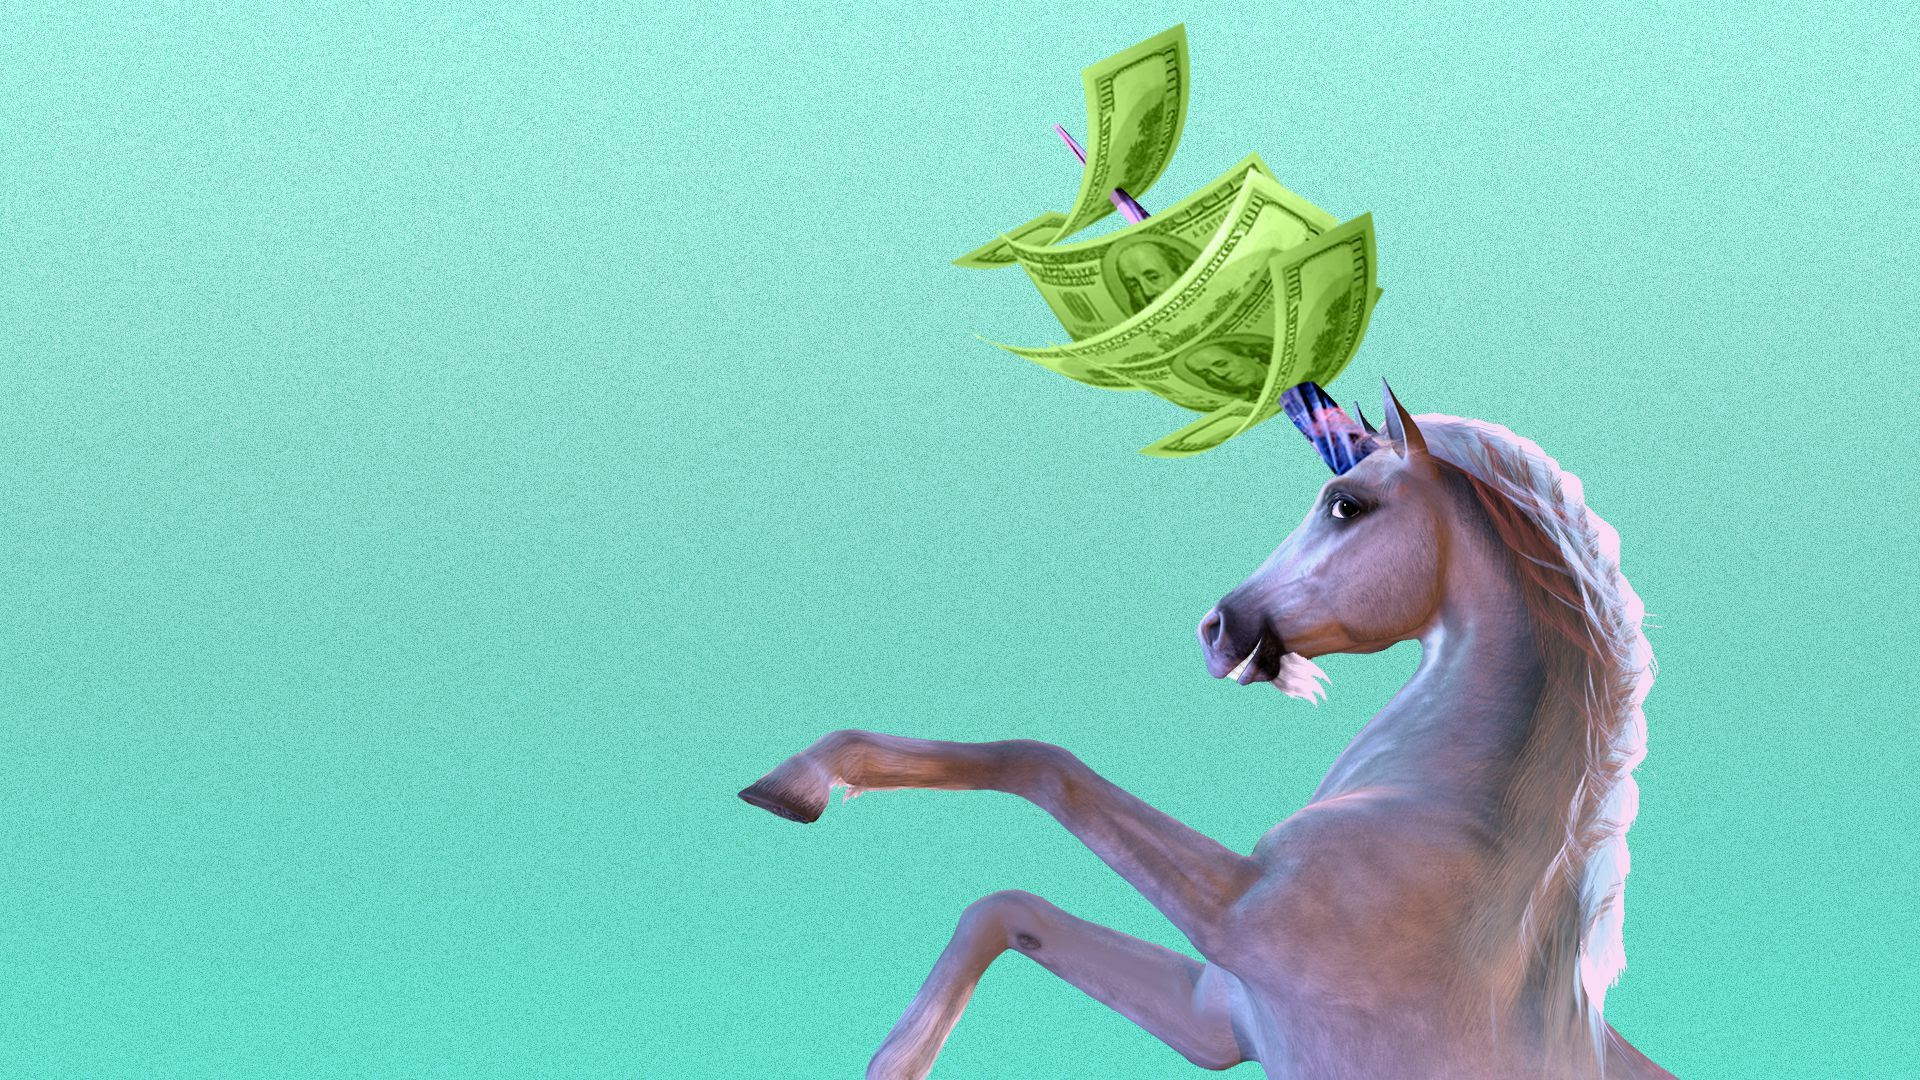 Uber, Palantir highlight the parallel universe of unicorn IPOs - Axios